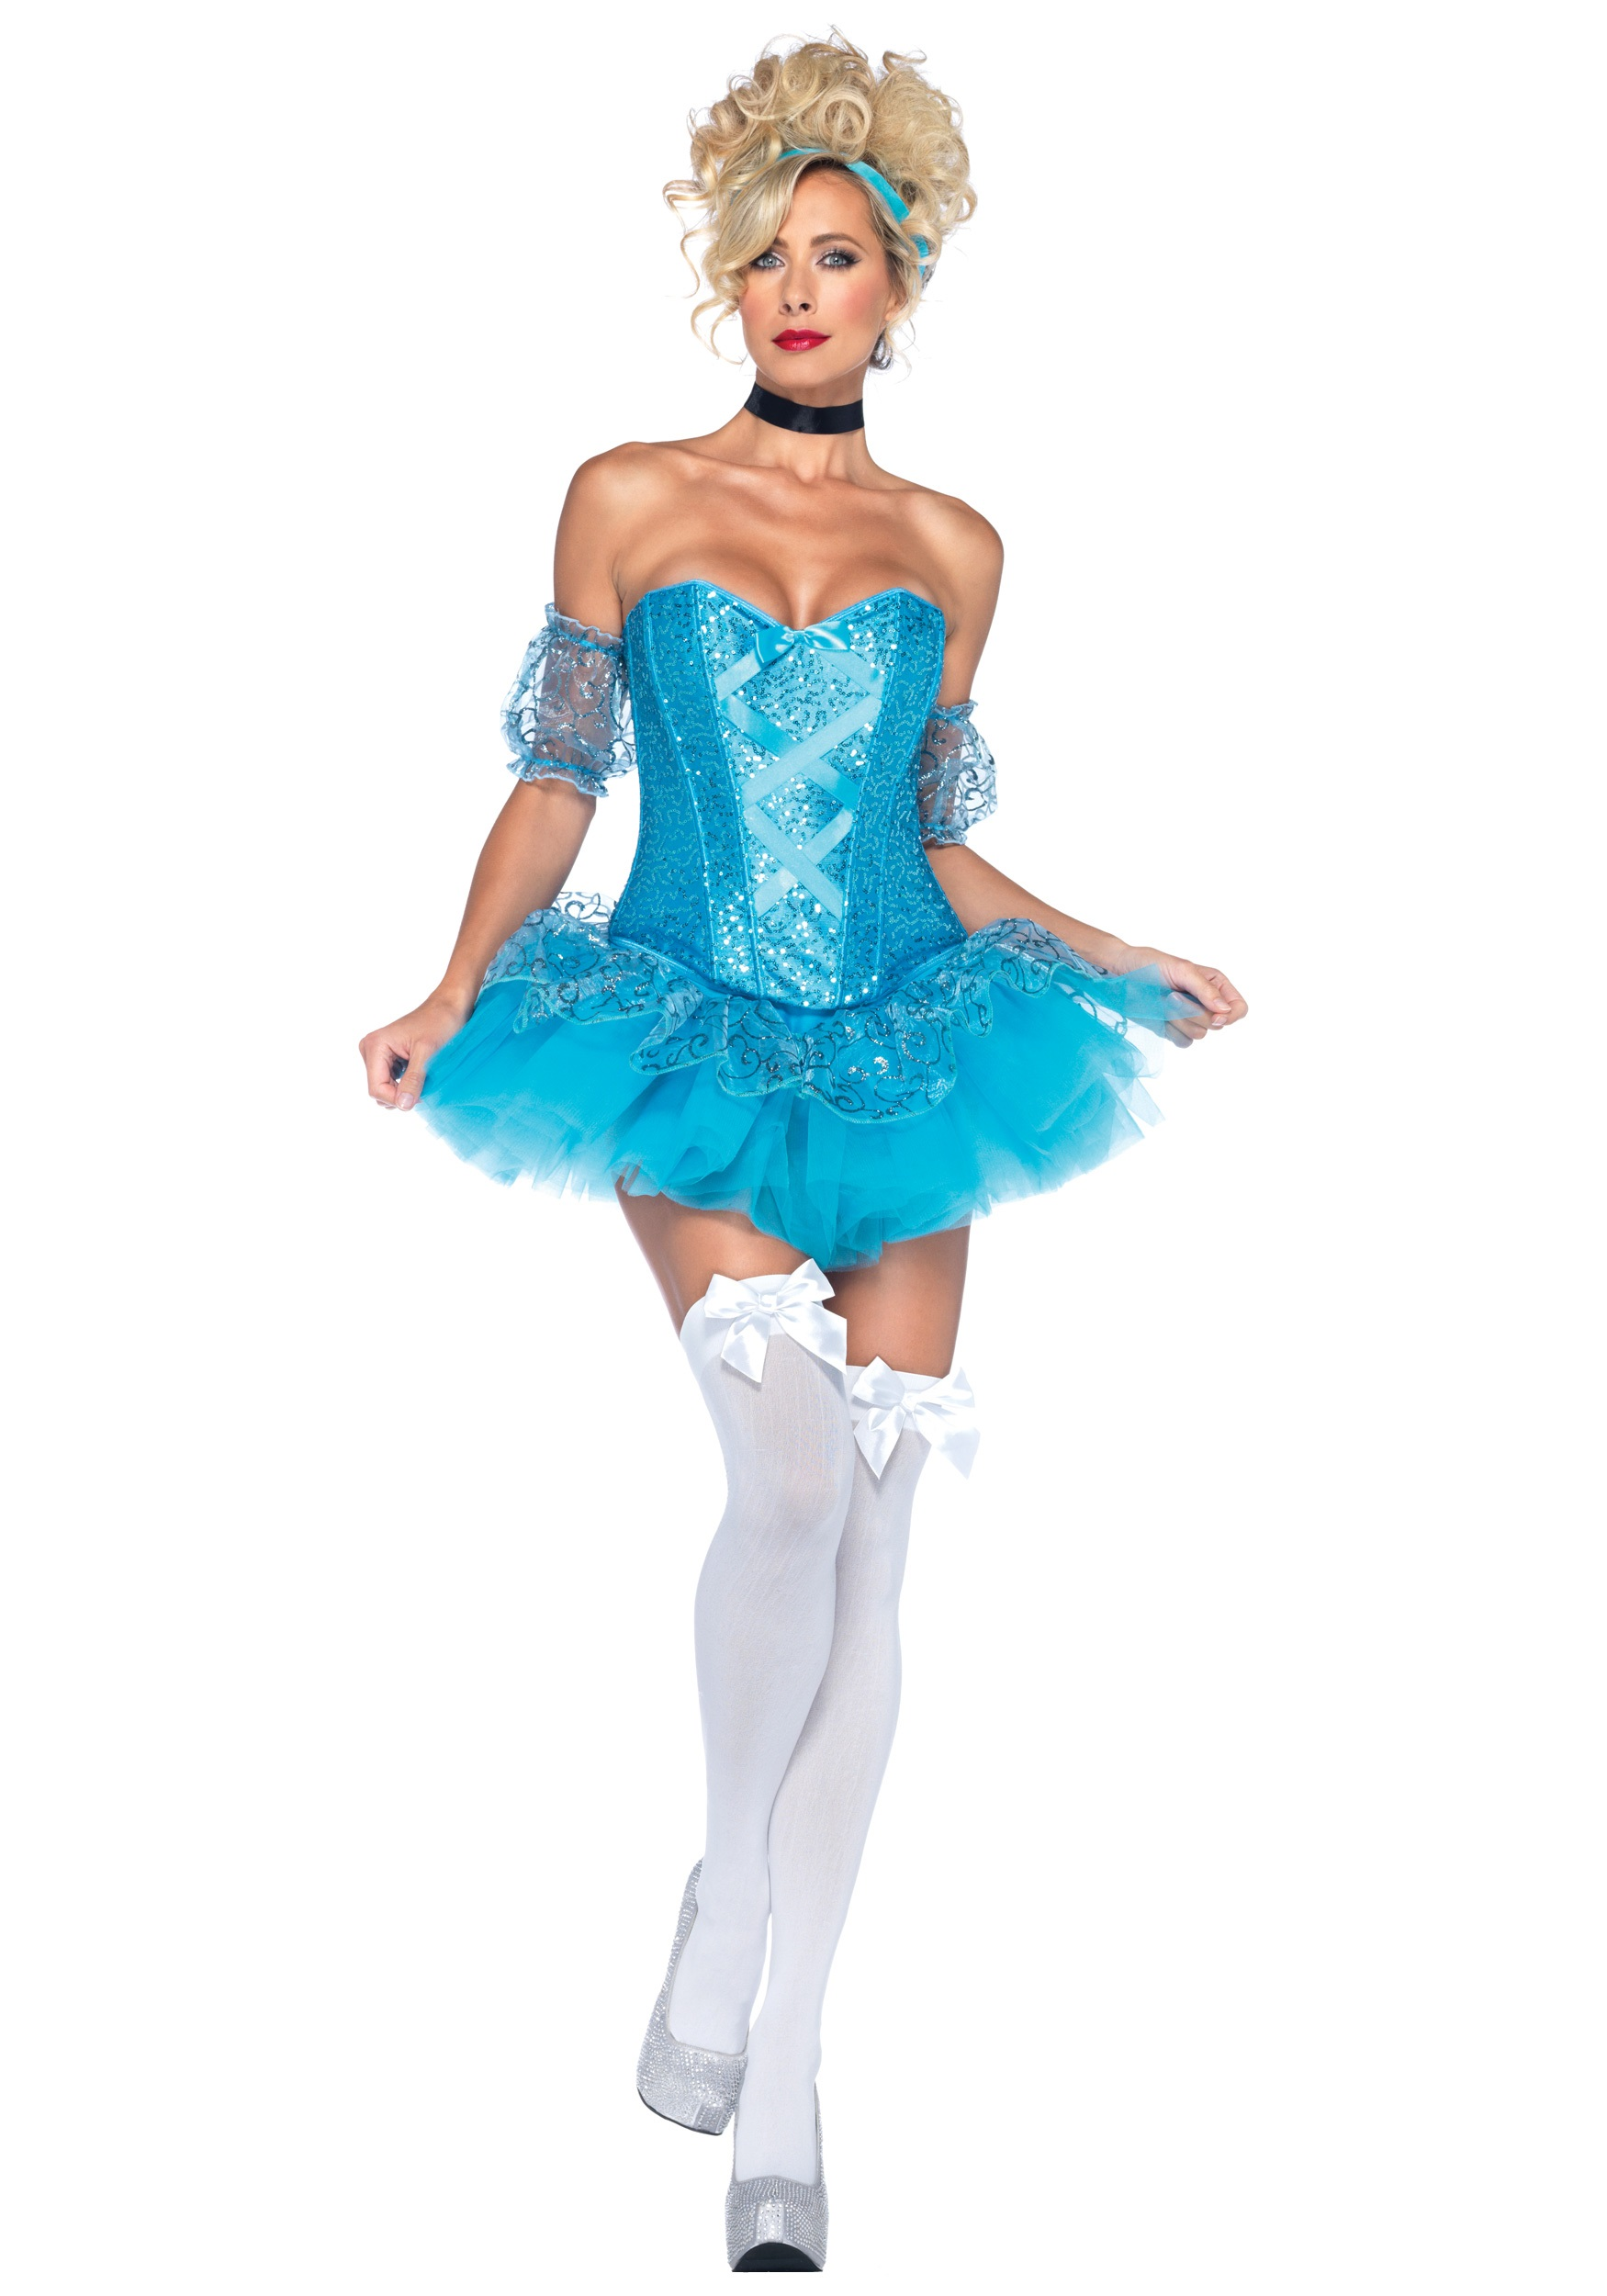 Blue Sequin Princess Costume  sc 1 st  Halloween Costumes & Blue Sequin Princess Costume - Halloween Costume Ideas 2018